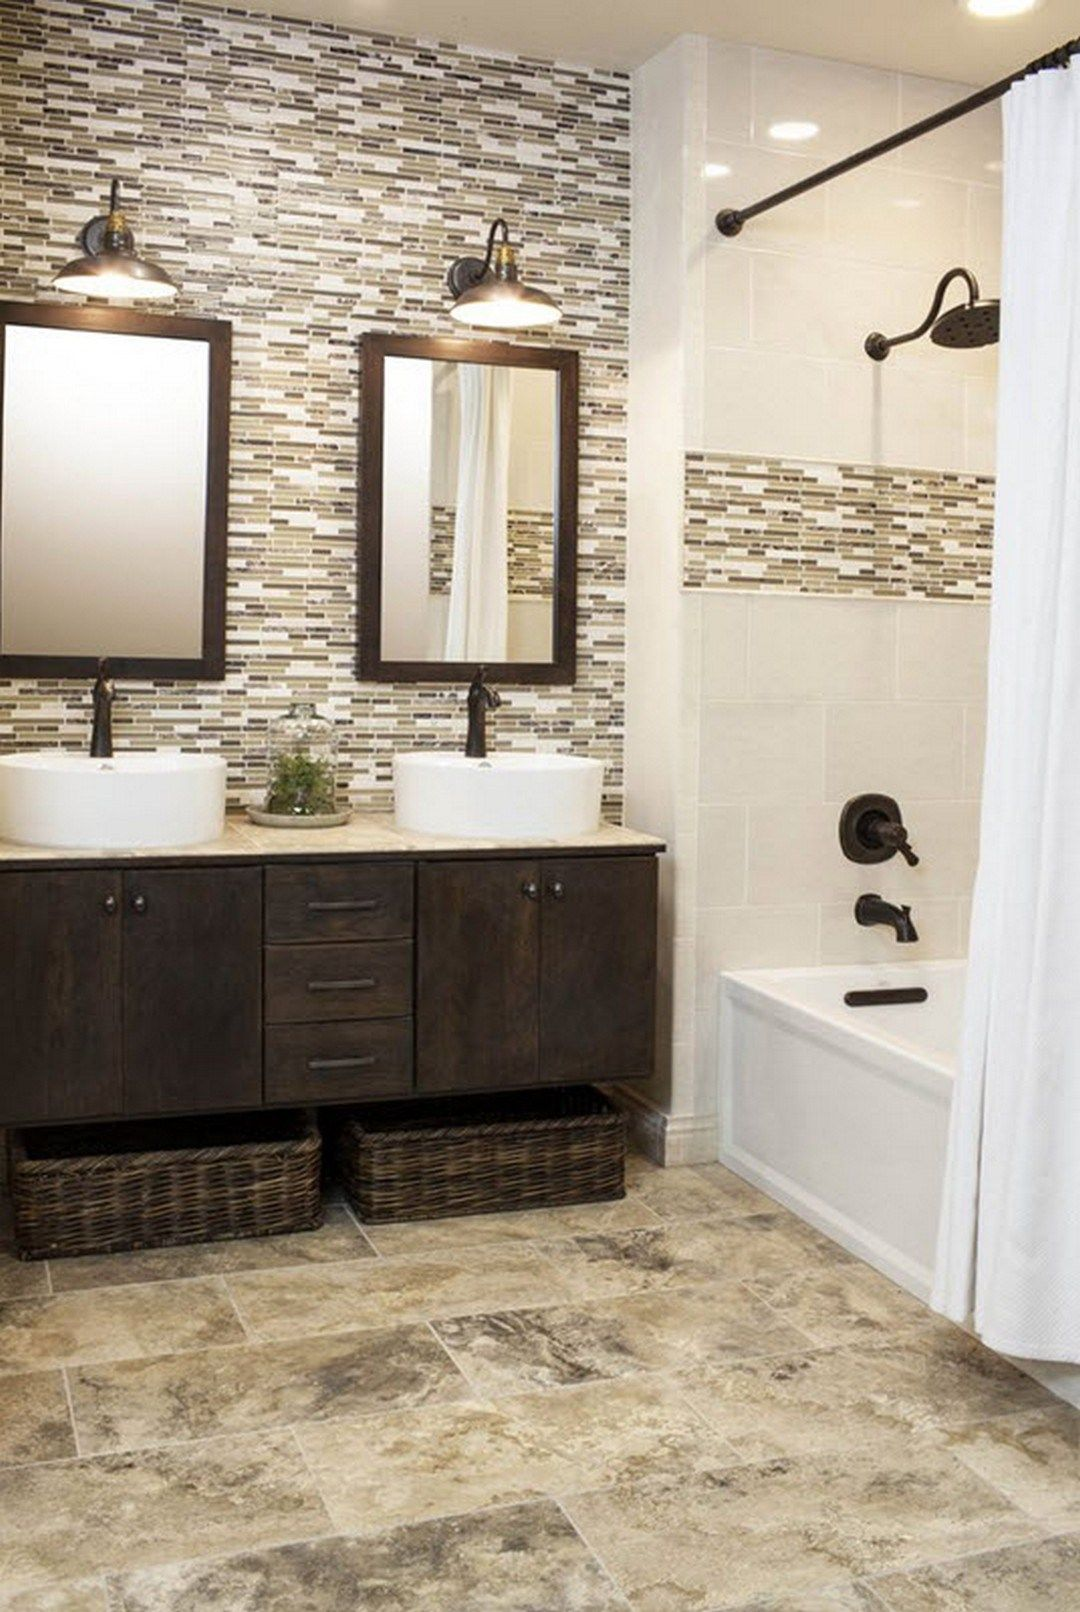 Beautiful Urban Farmhouse Master Bathroom Remodel Our Home - Bathroom remodel program free